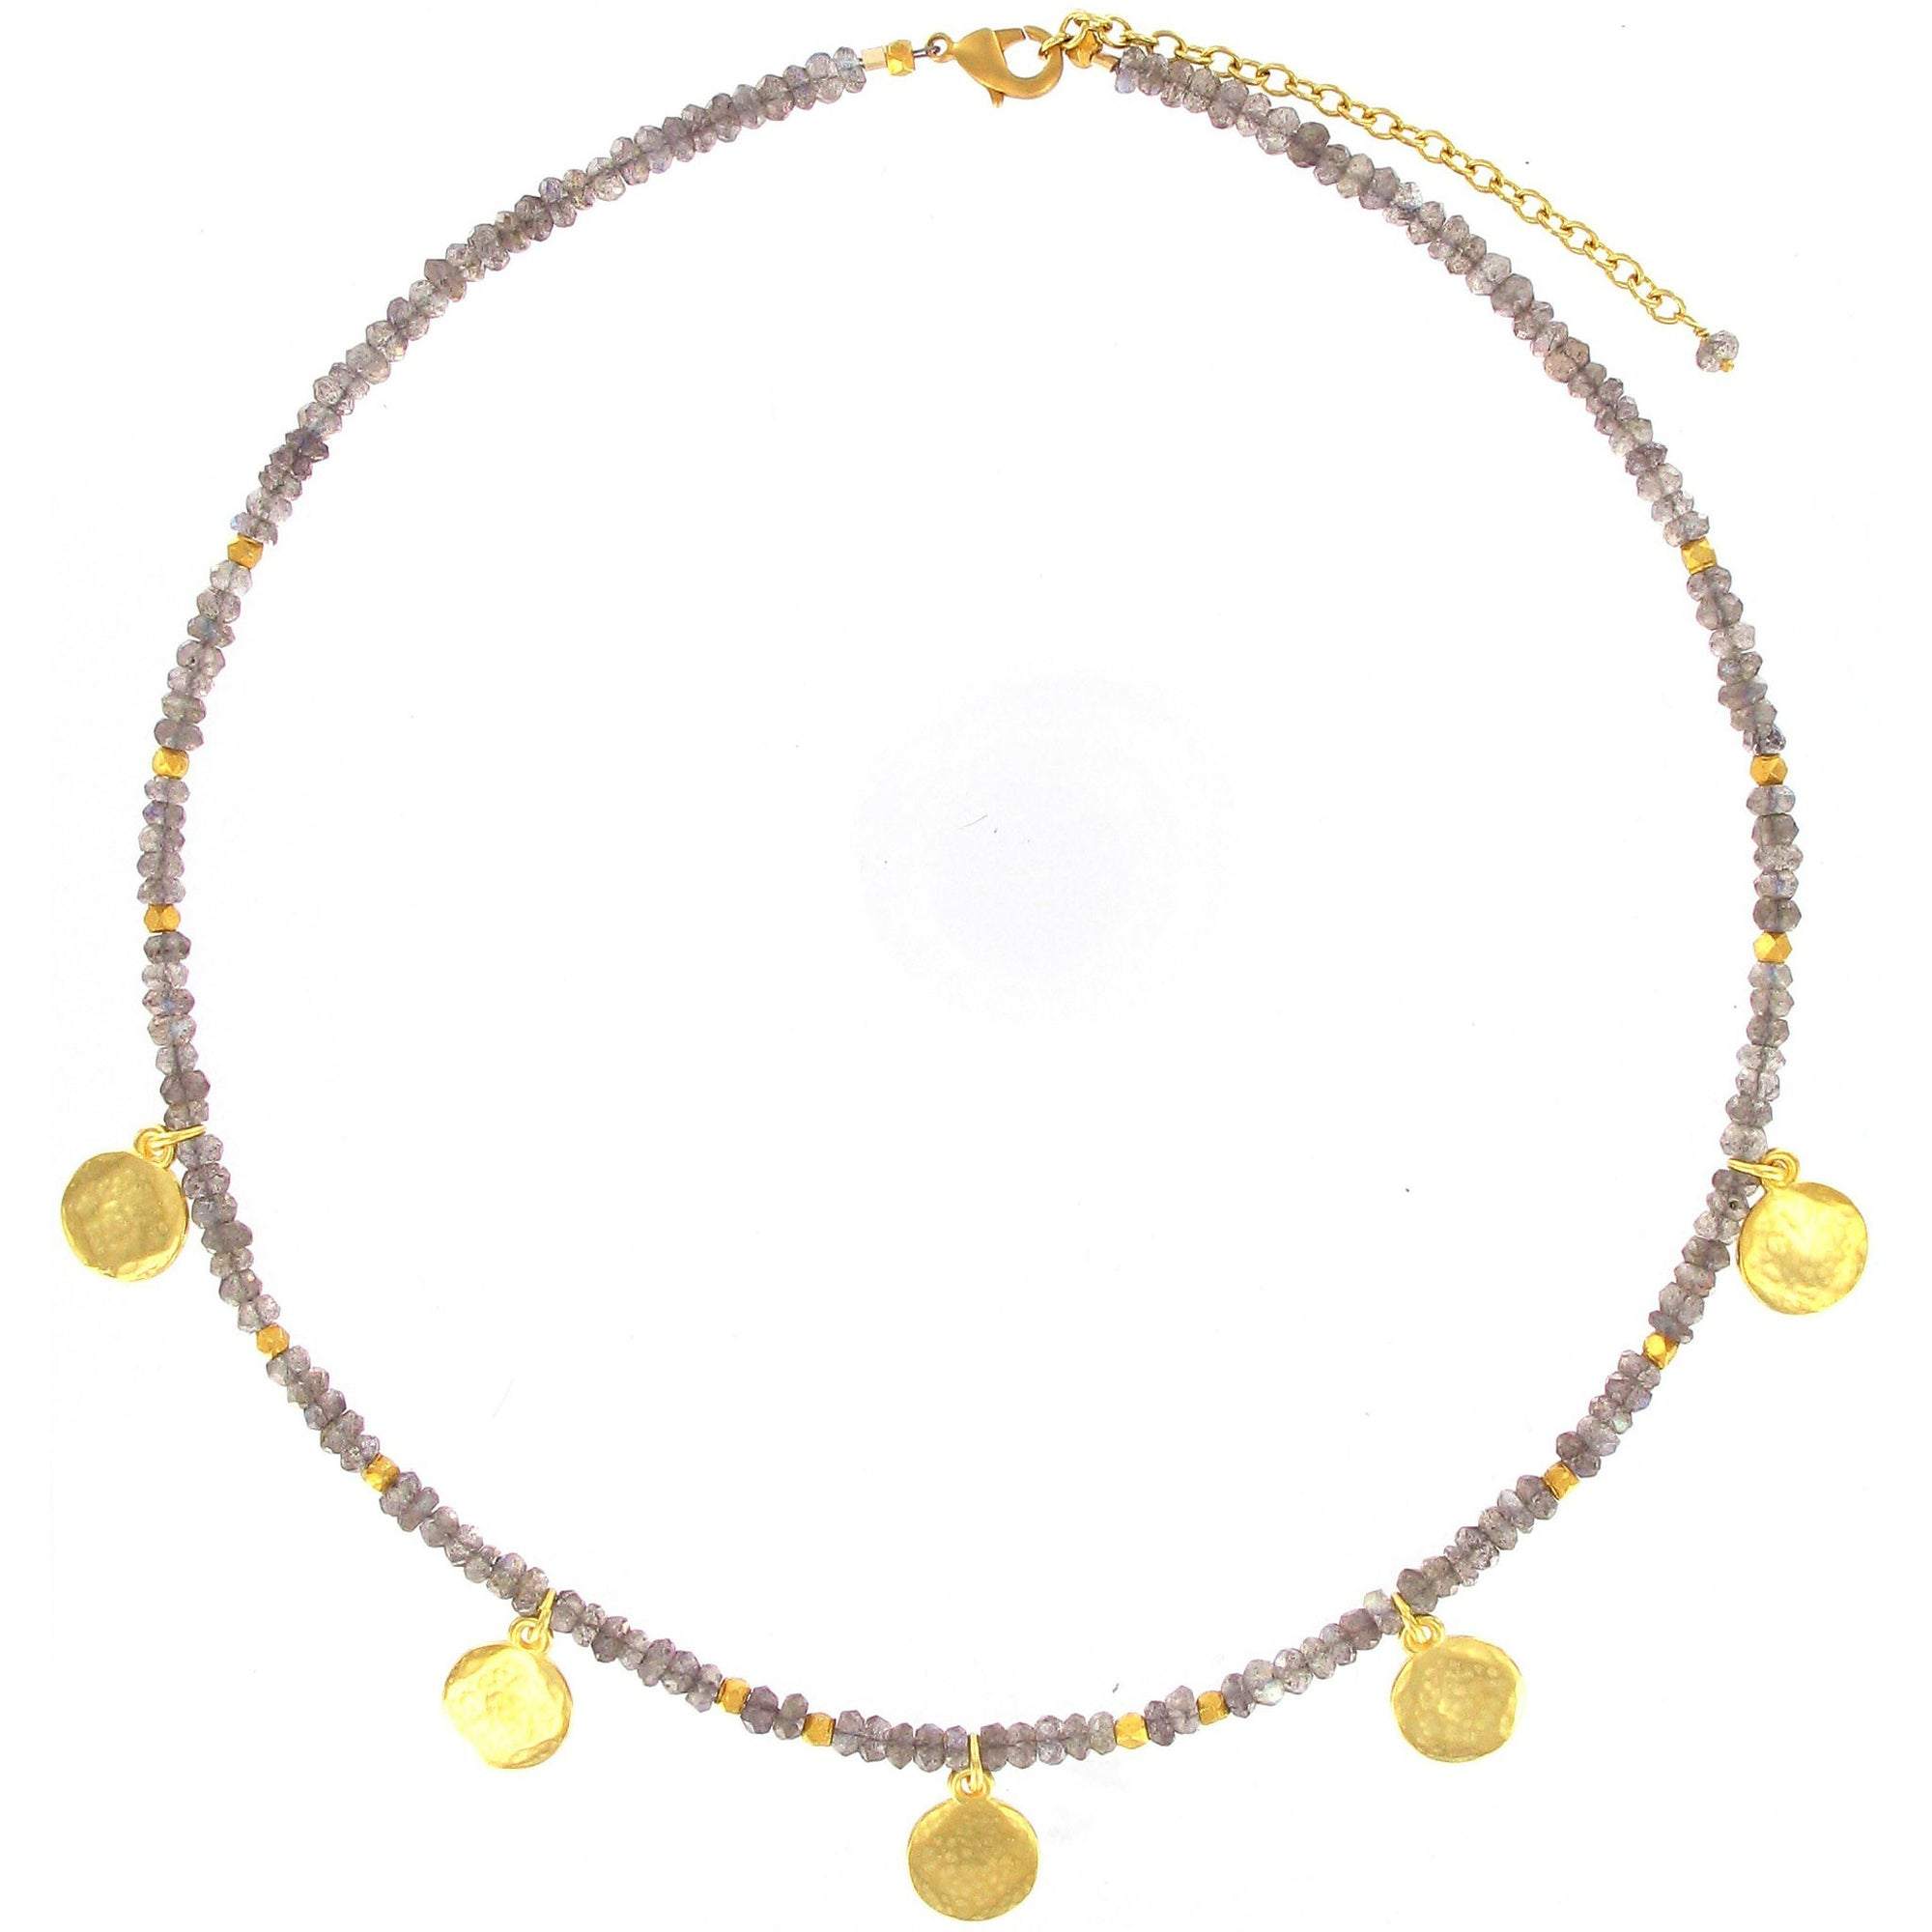 lloyd sku gold necklace morgan john precious semi jewellery and product stone